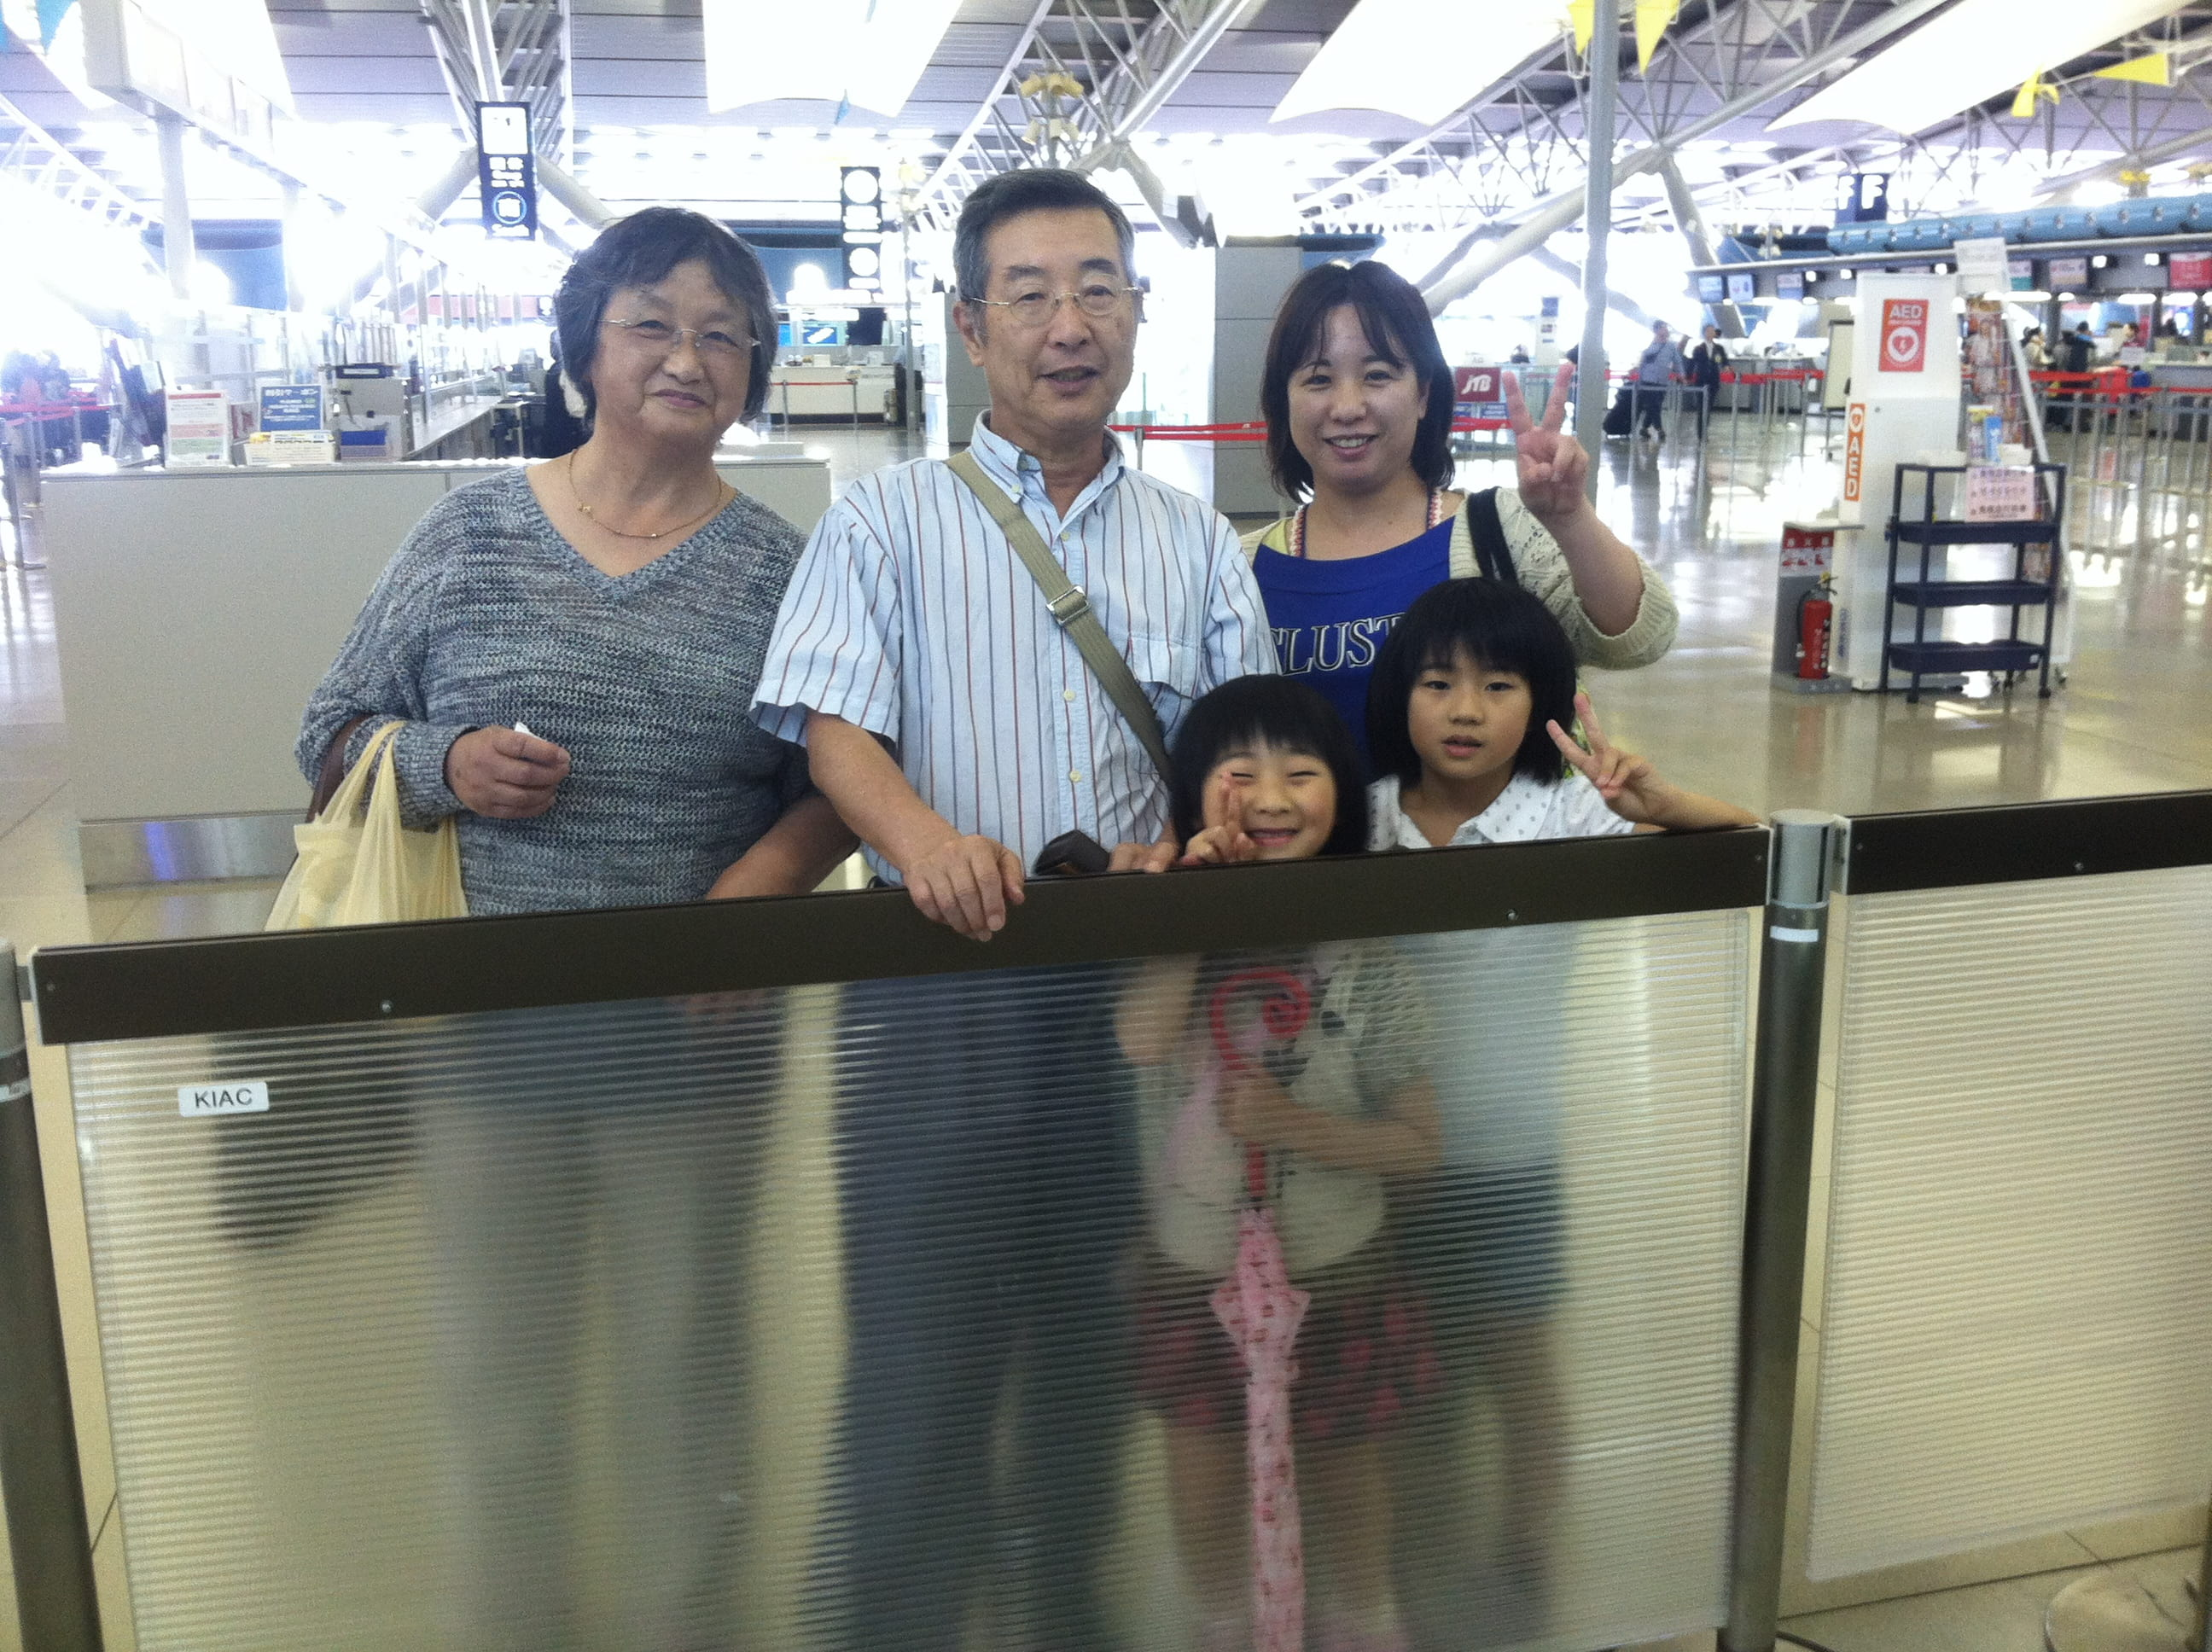 Host family saying goodbye at airport